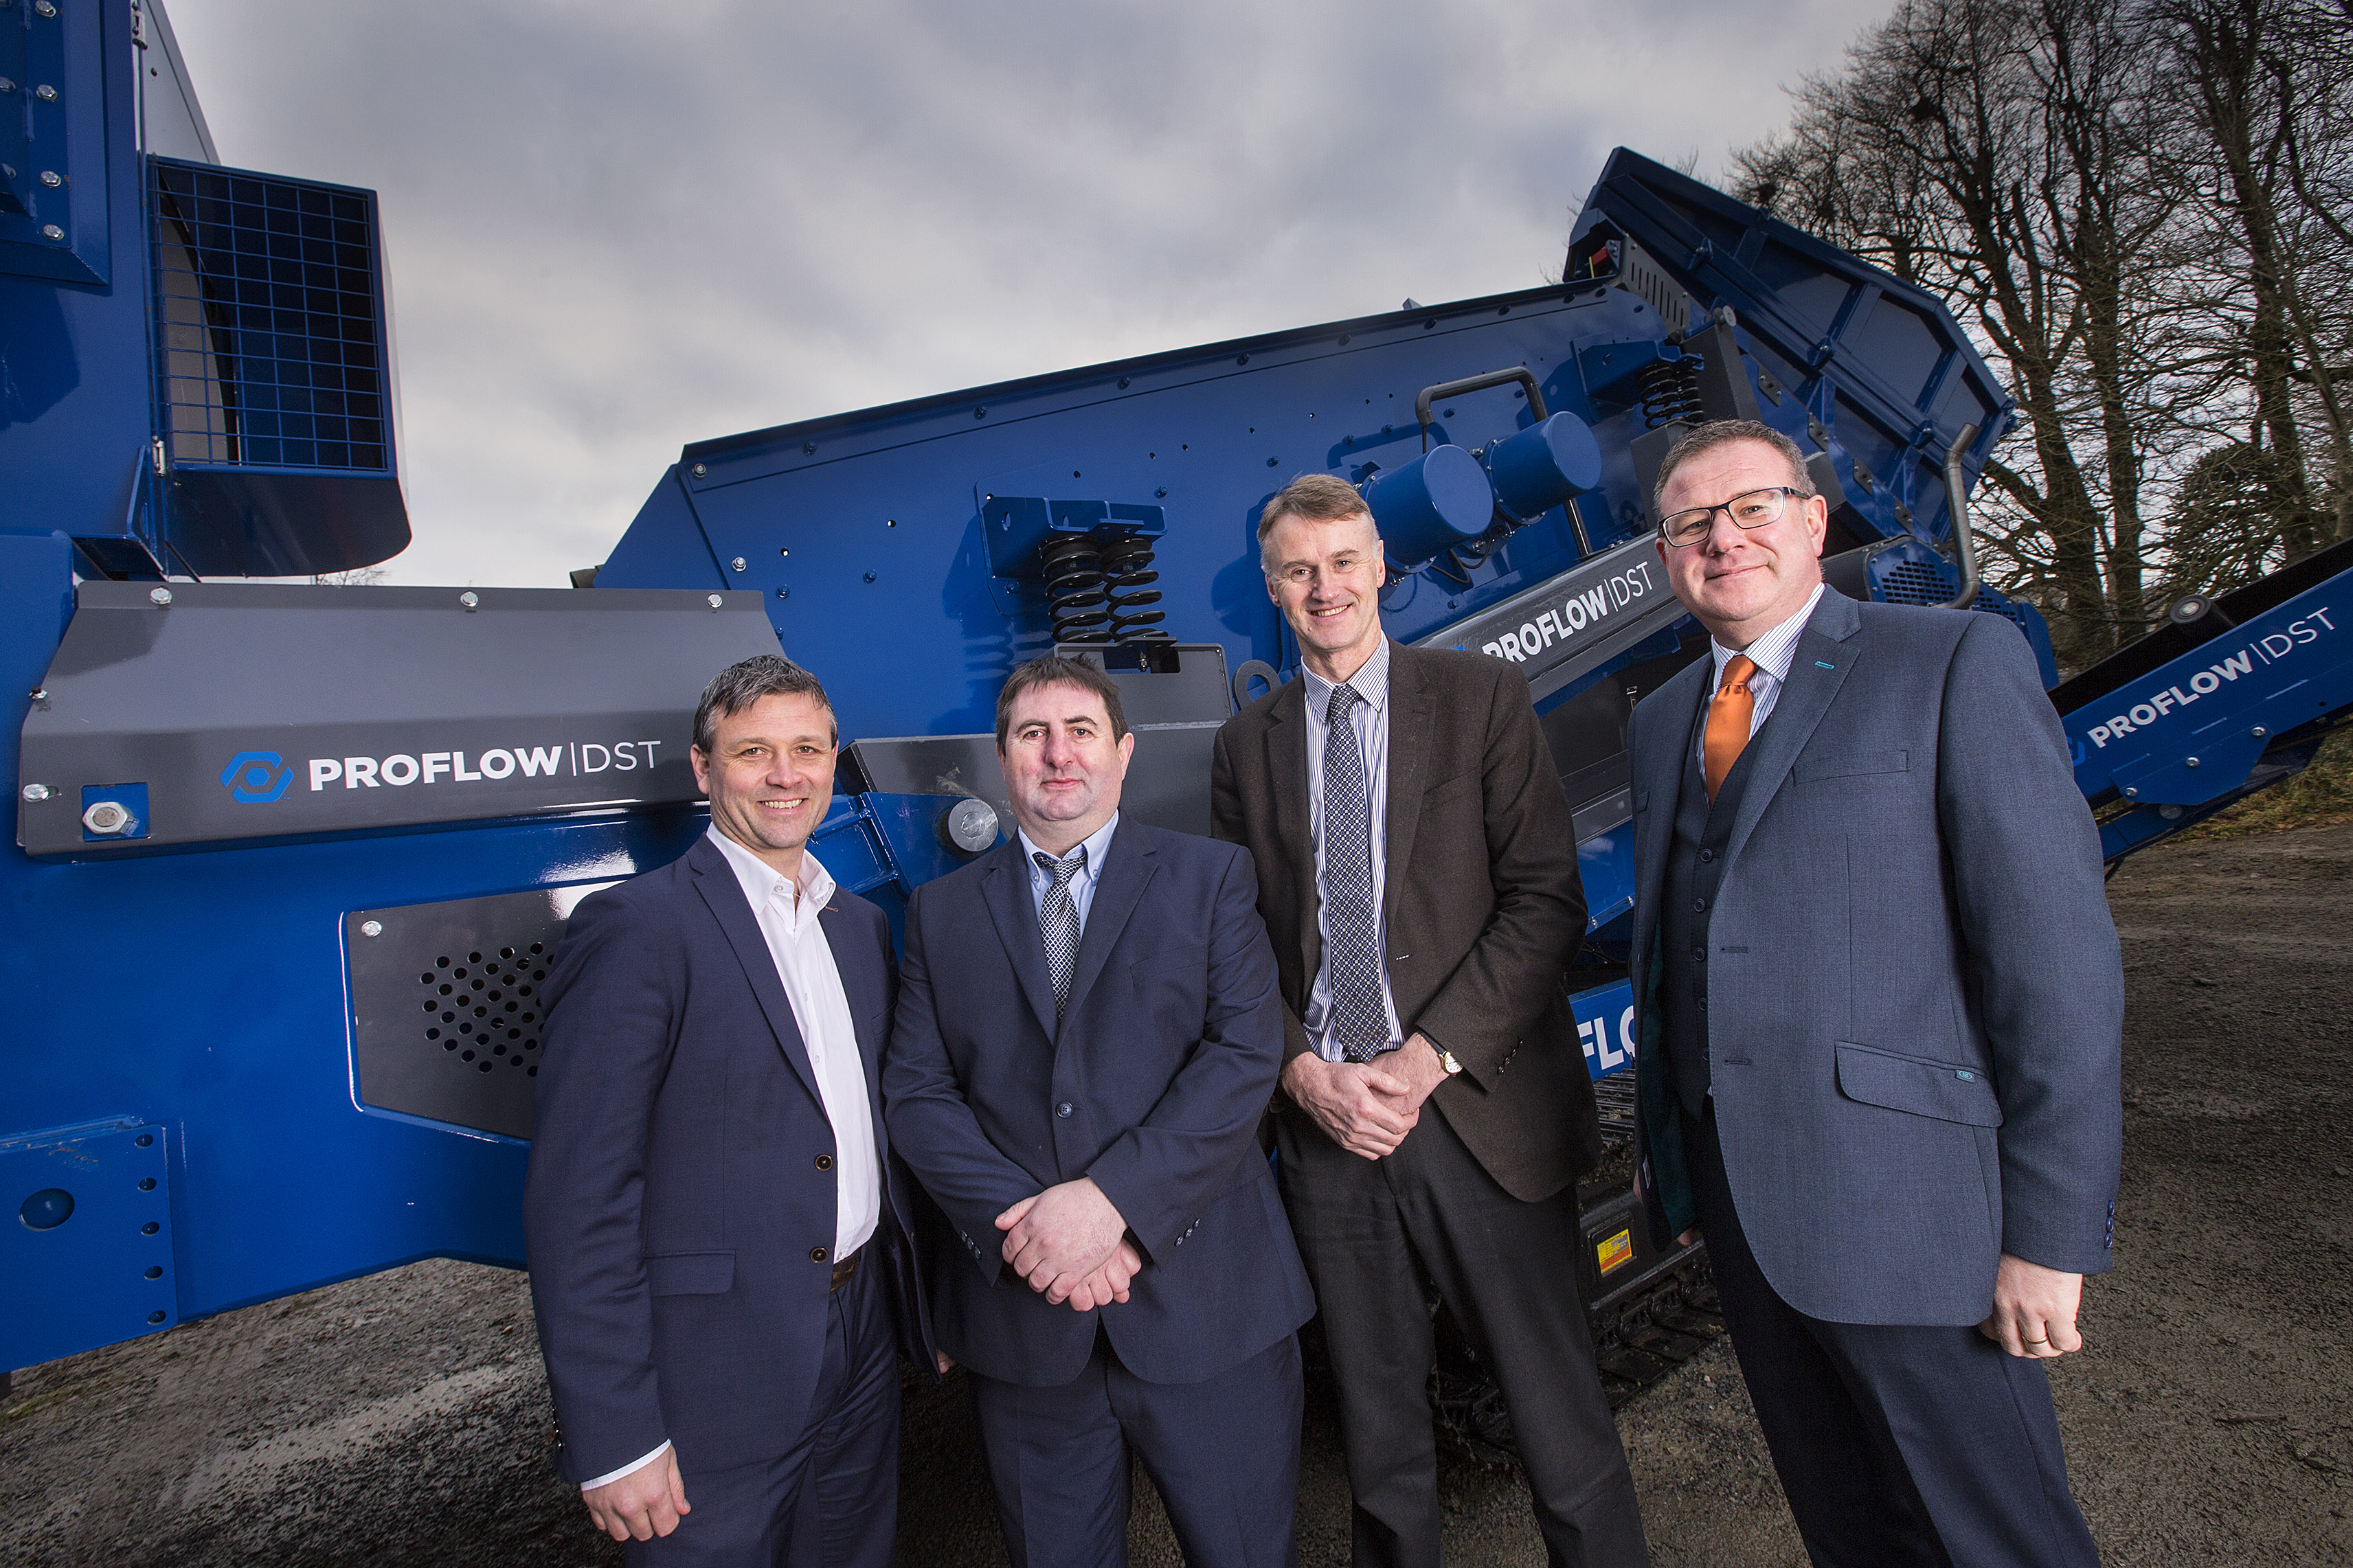 Allen Martin, Senior Investment Executive, Kernel Capital; Nishi Ward, CEO, Waste Systems; William McCulla, Director Corporate Finance, Invest NI and Andy Palmer, Customer Service Manager, Bank of Ireland UK.